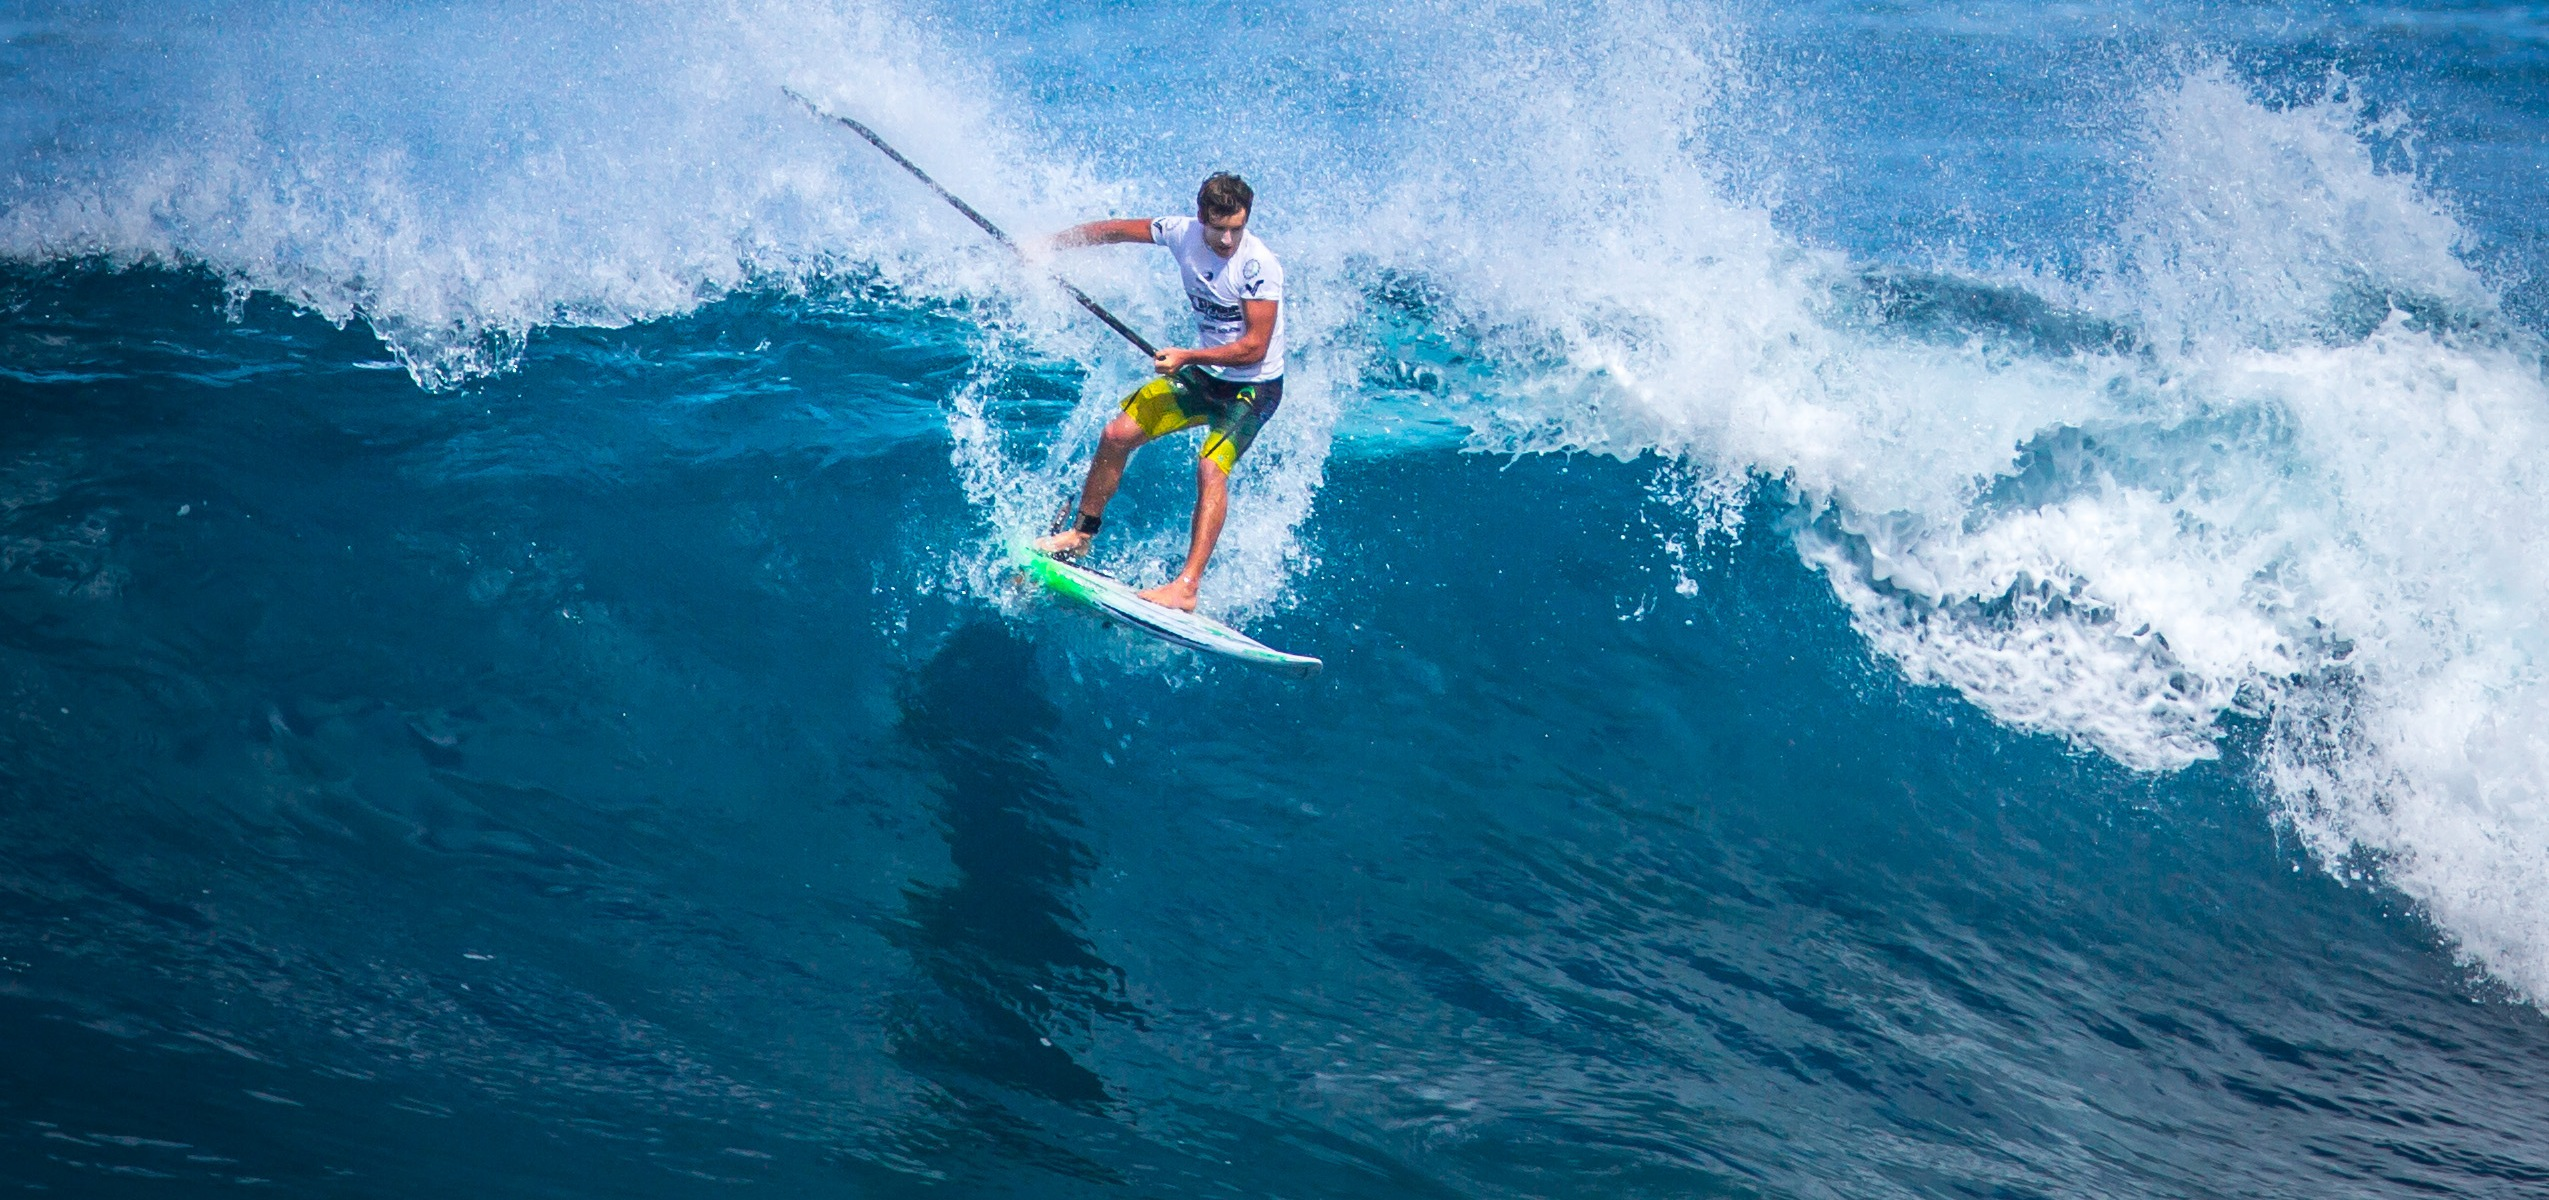 ®Benoit-CARPENTIER-SUP-2014-Sunset-Beach-Pro-©StephanKleinlein-2